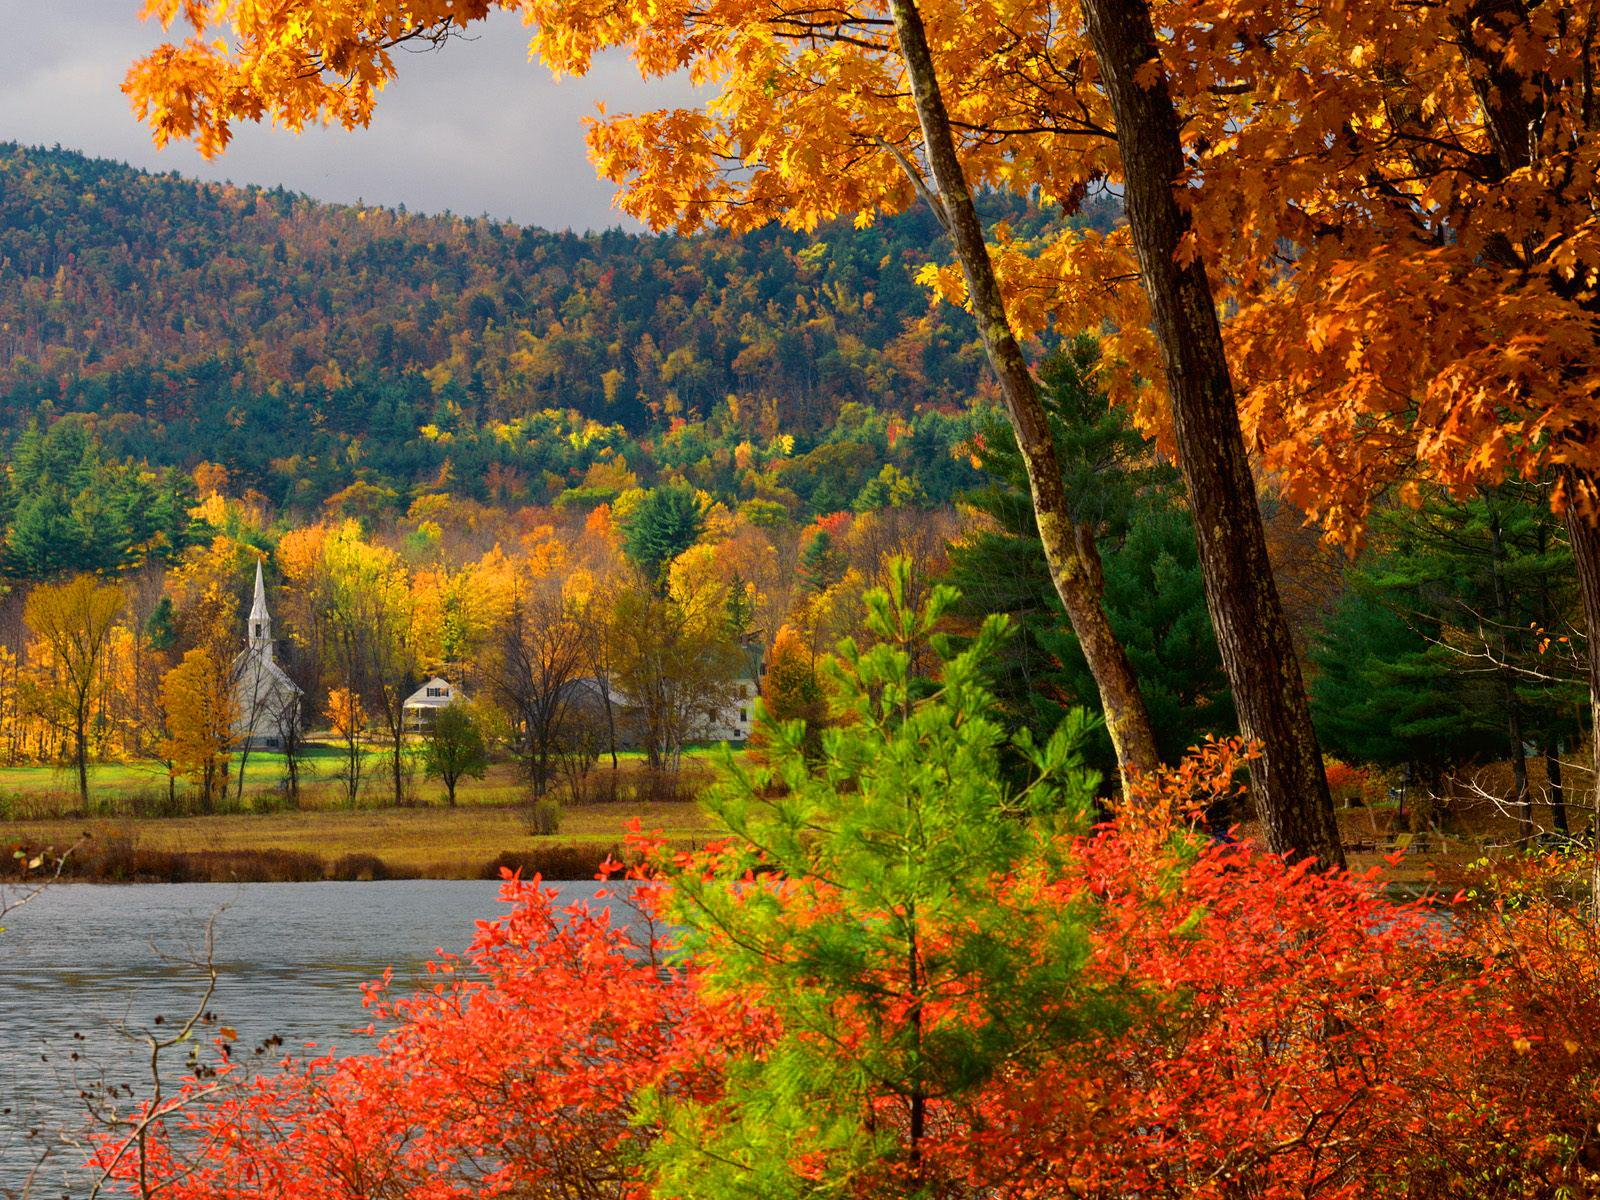 New Hampshire Wallpapers Desktop 1600x1200 WallpapersExpertcom 1600x1200